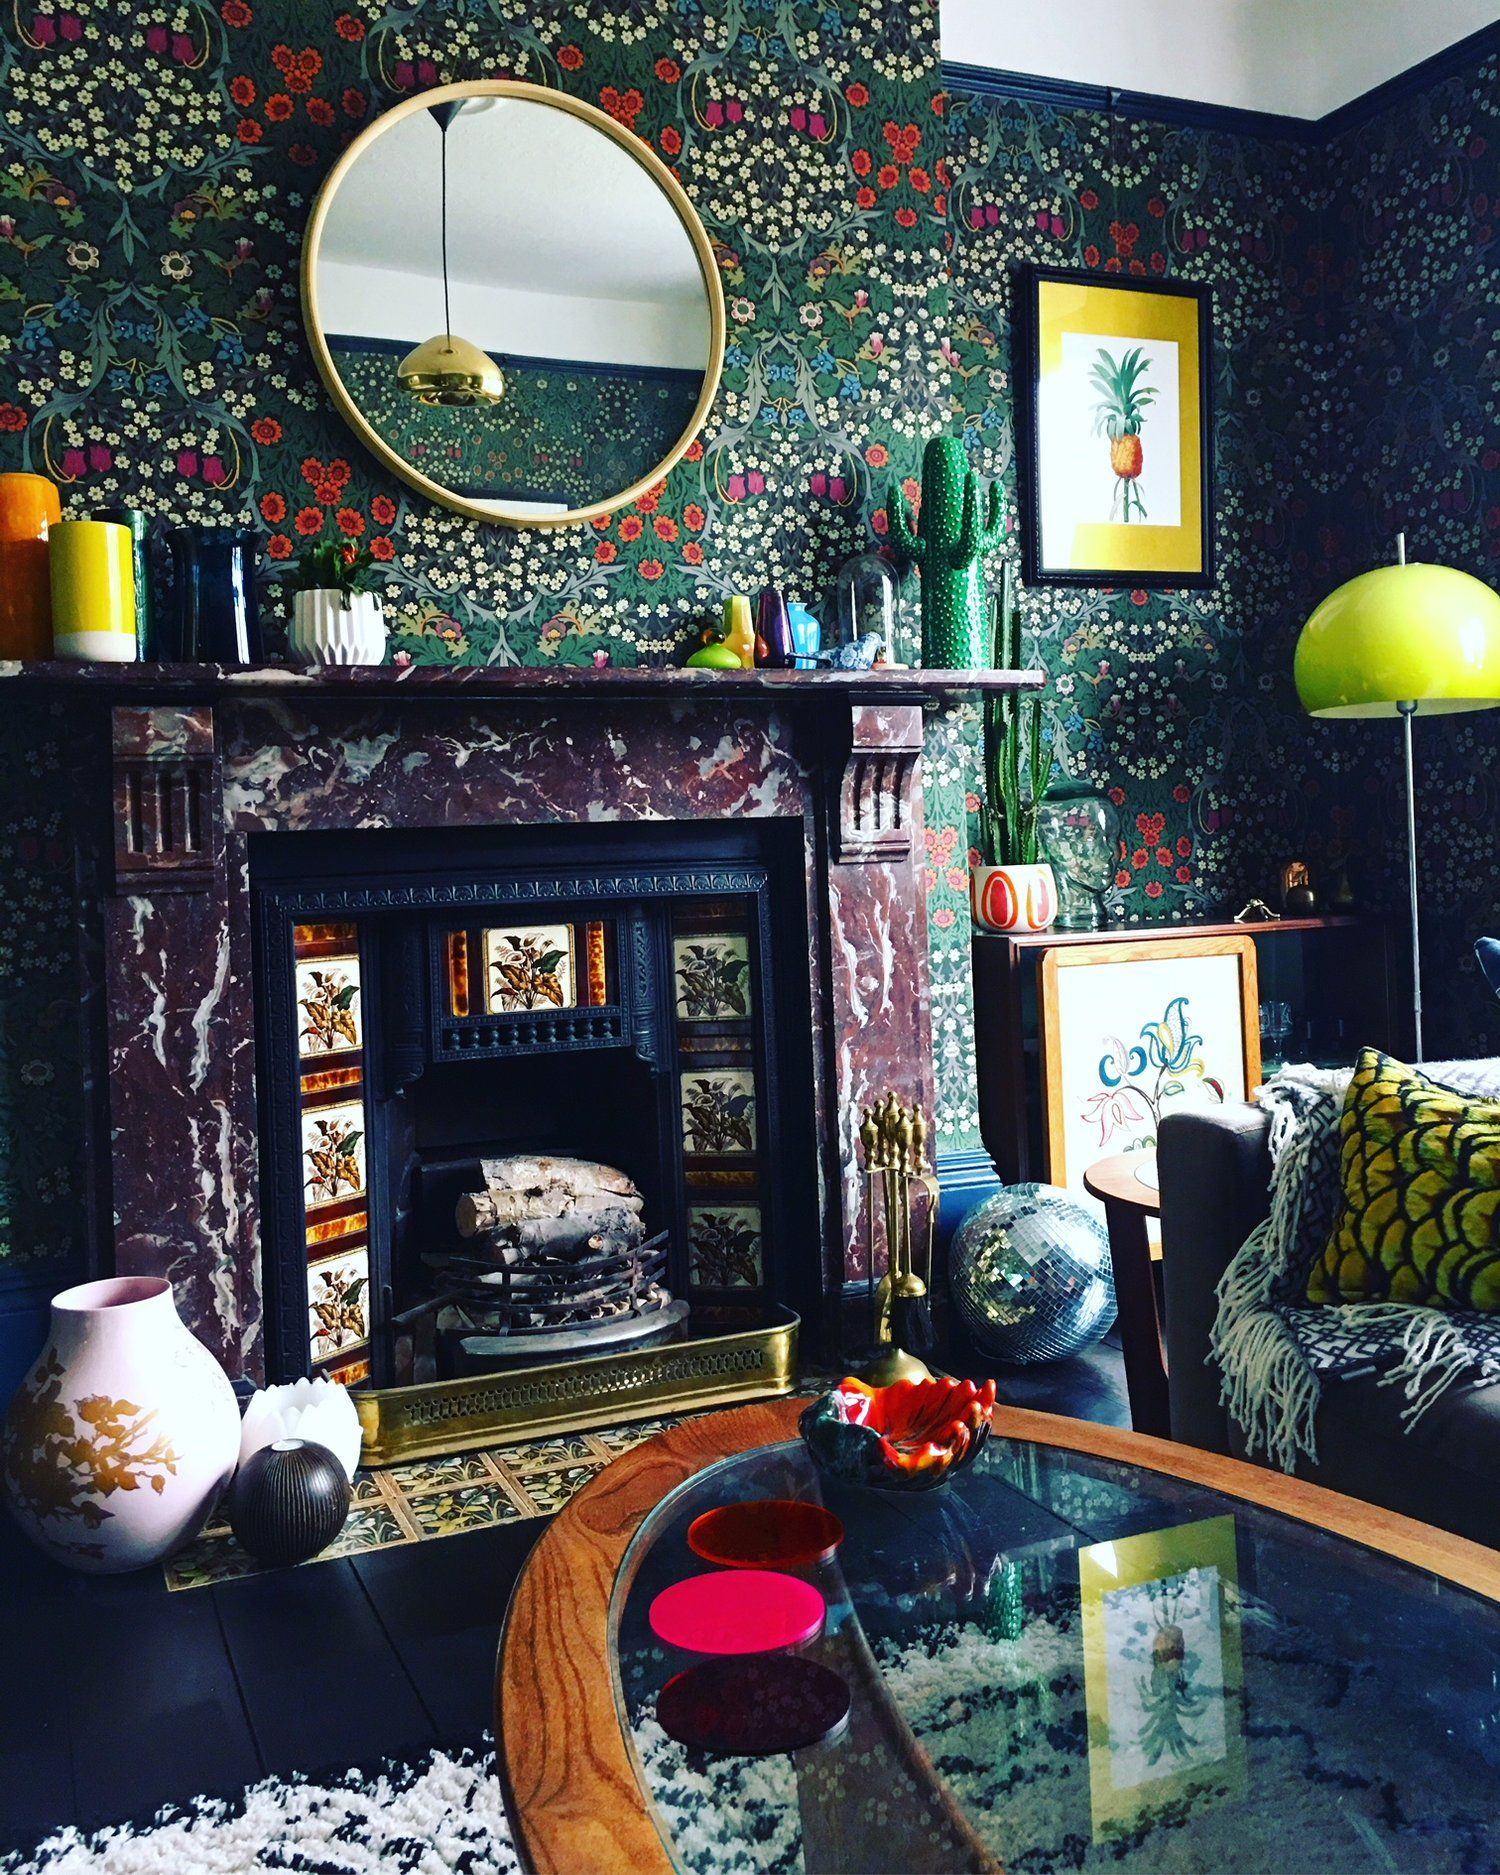 Claire William's Eclectic, Maximalist Home Home decor